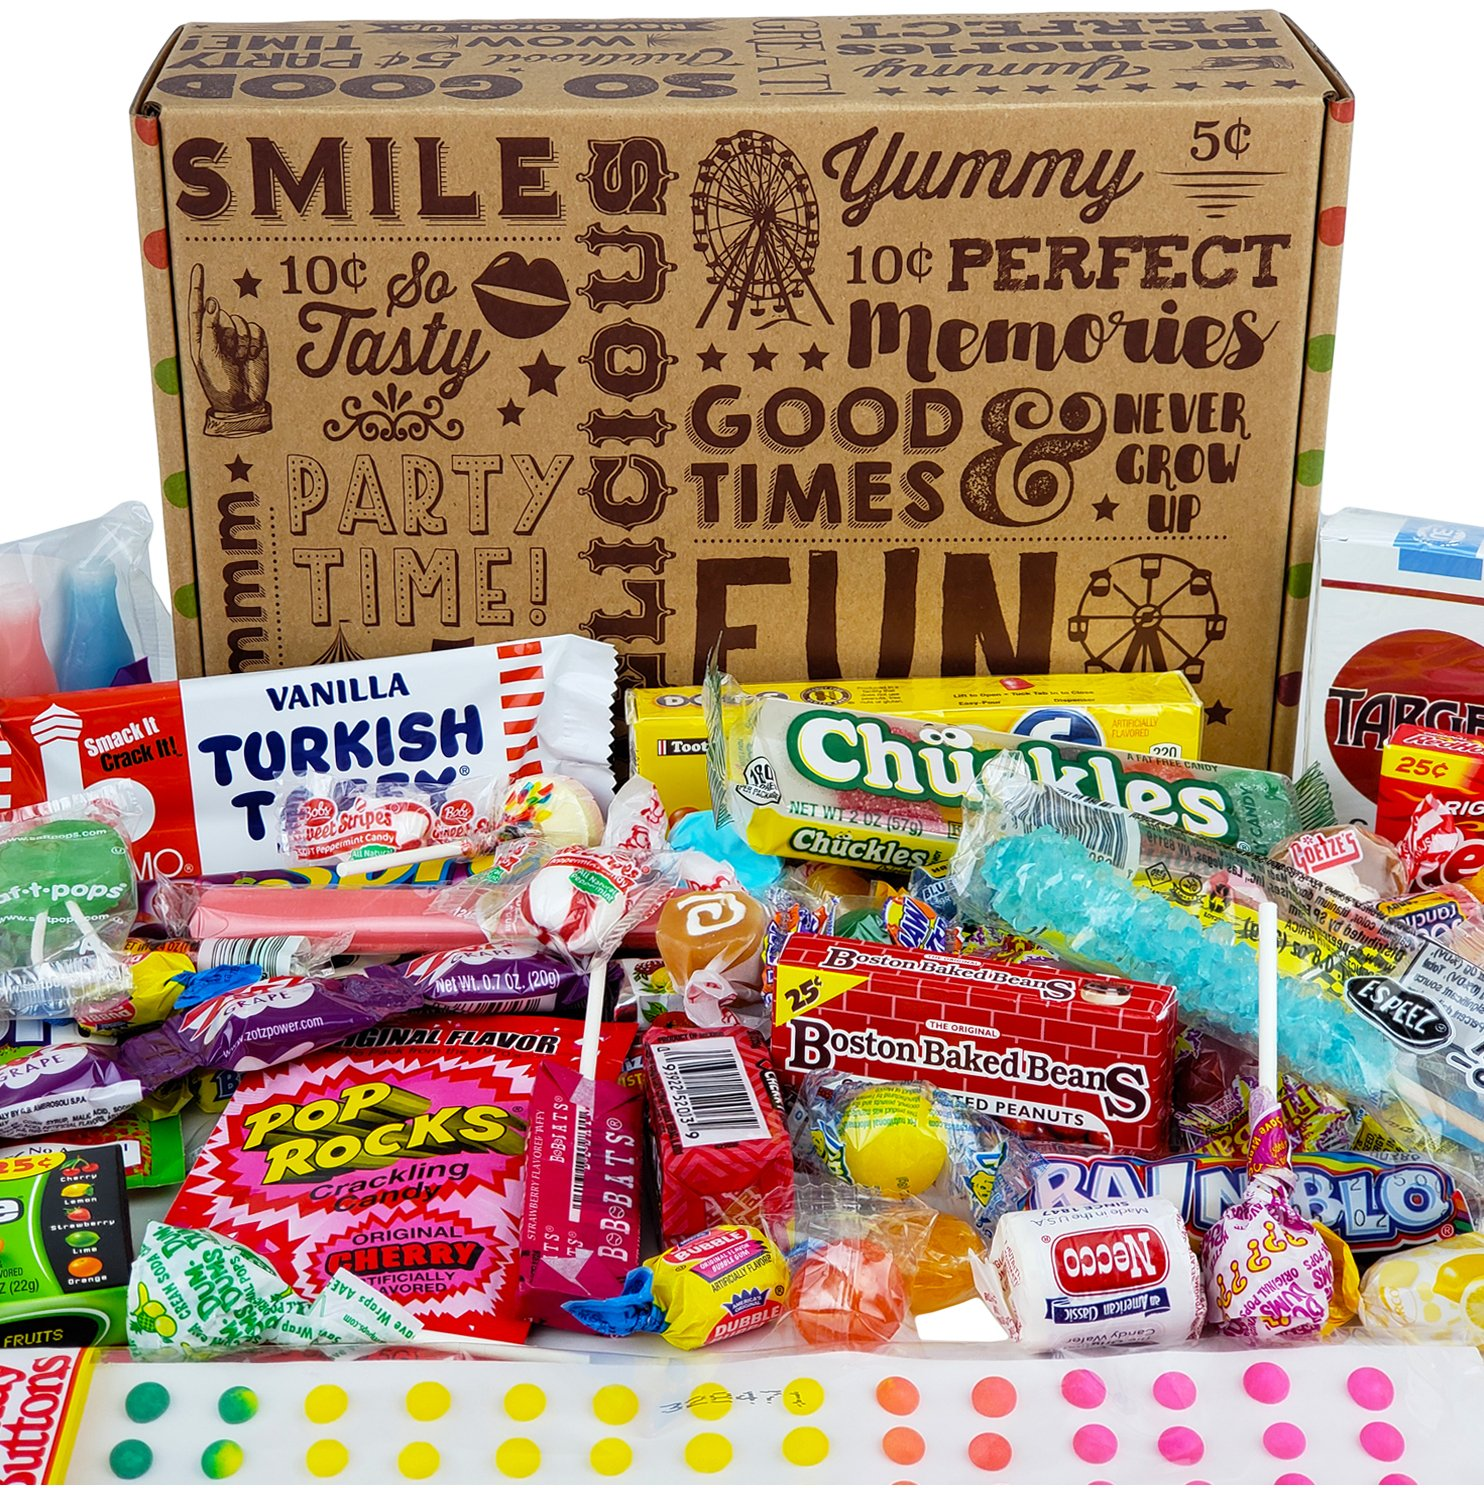 VINTAGE CANDY CO. HAPPY BIRTHDAY NOSTALGIA FUN CANDY CARE PACKAGE - Retro Candies Assortment Variety - GAG GIFT BASKET - PERFECT For Adults, College Students, Military, Teens, Man, Woman, Boy or Girl by Vintage Candy Co.